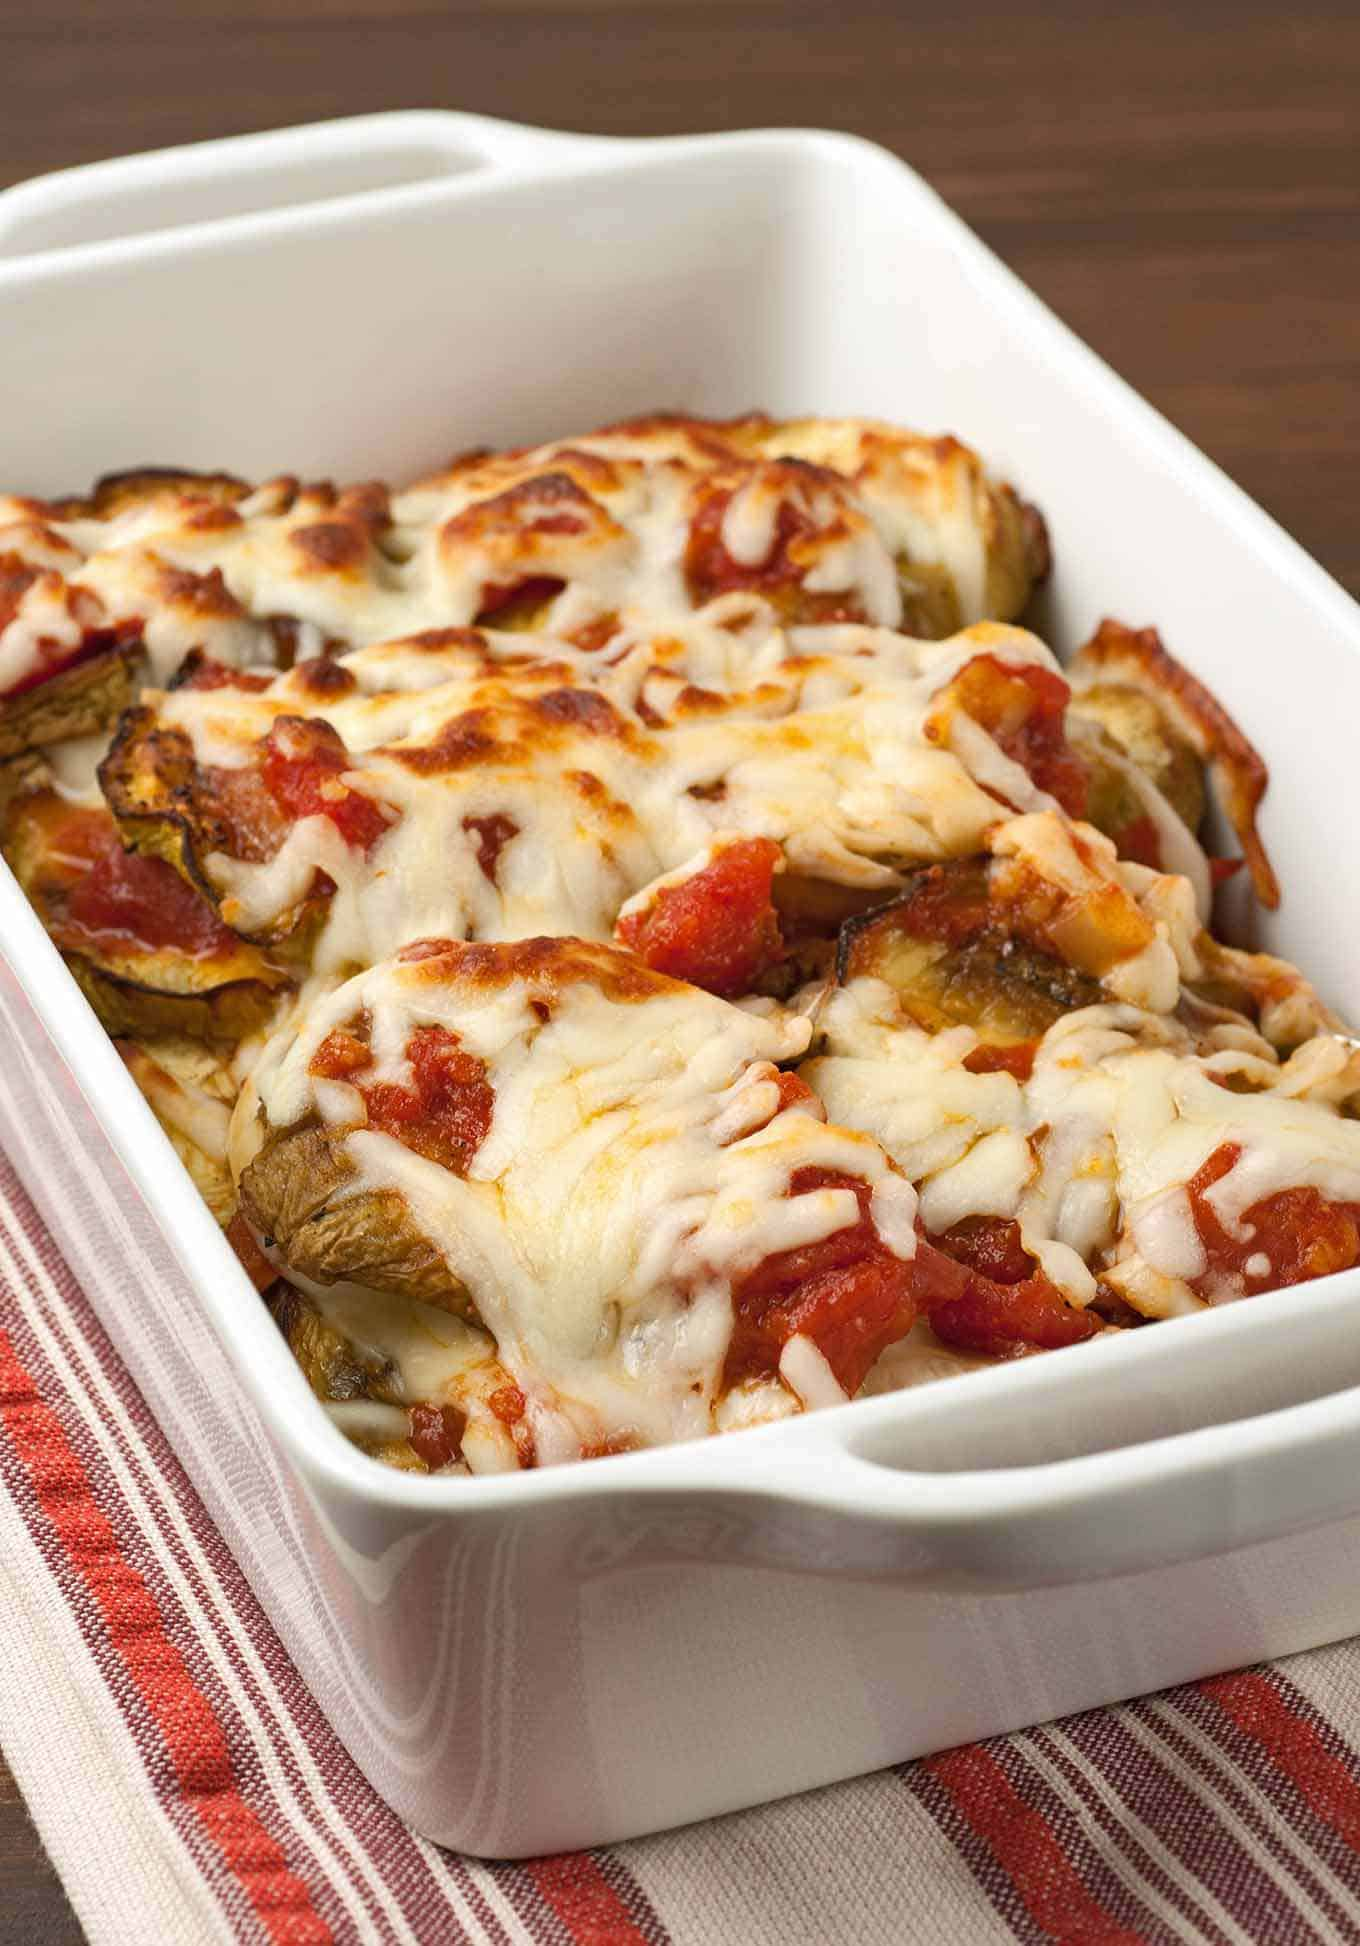 A casserole dish filled with roasted eggplant topped with marinara and melted mozzarella.